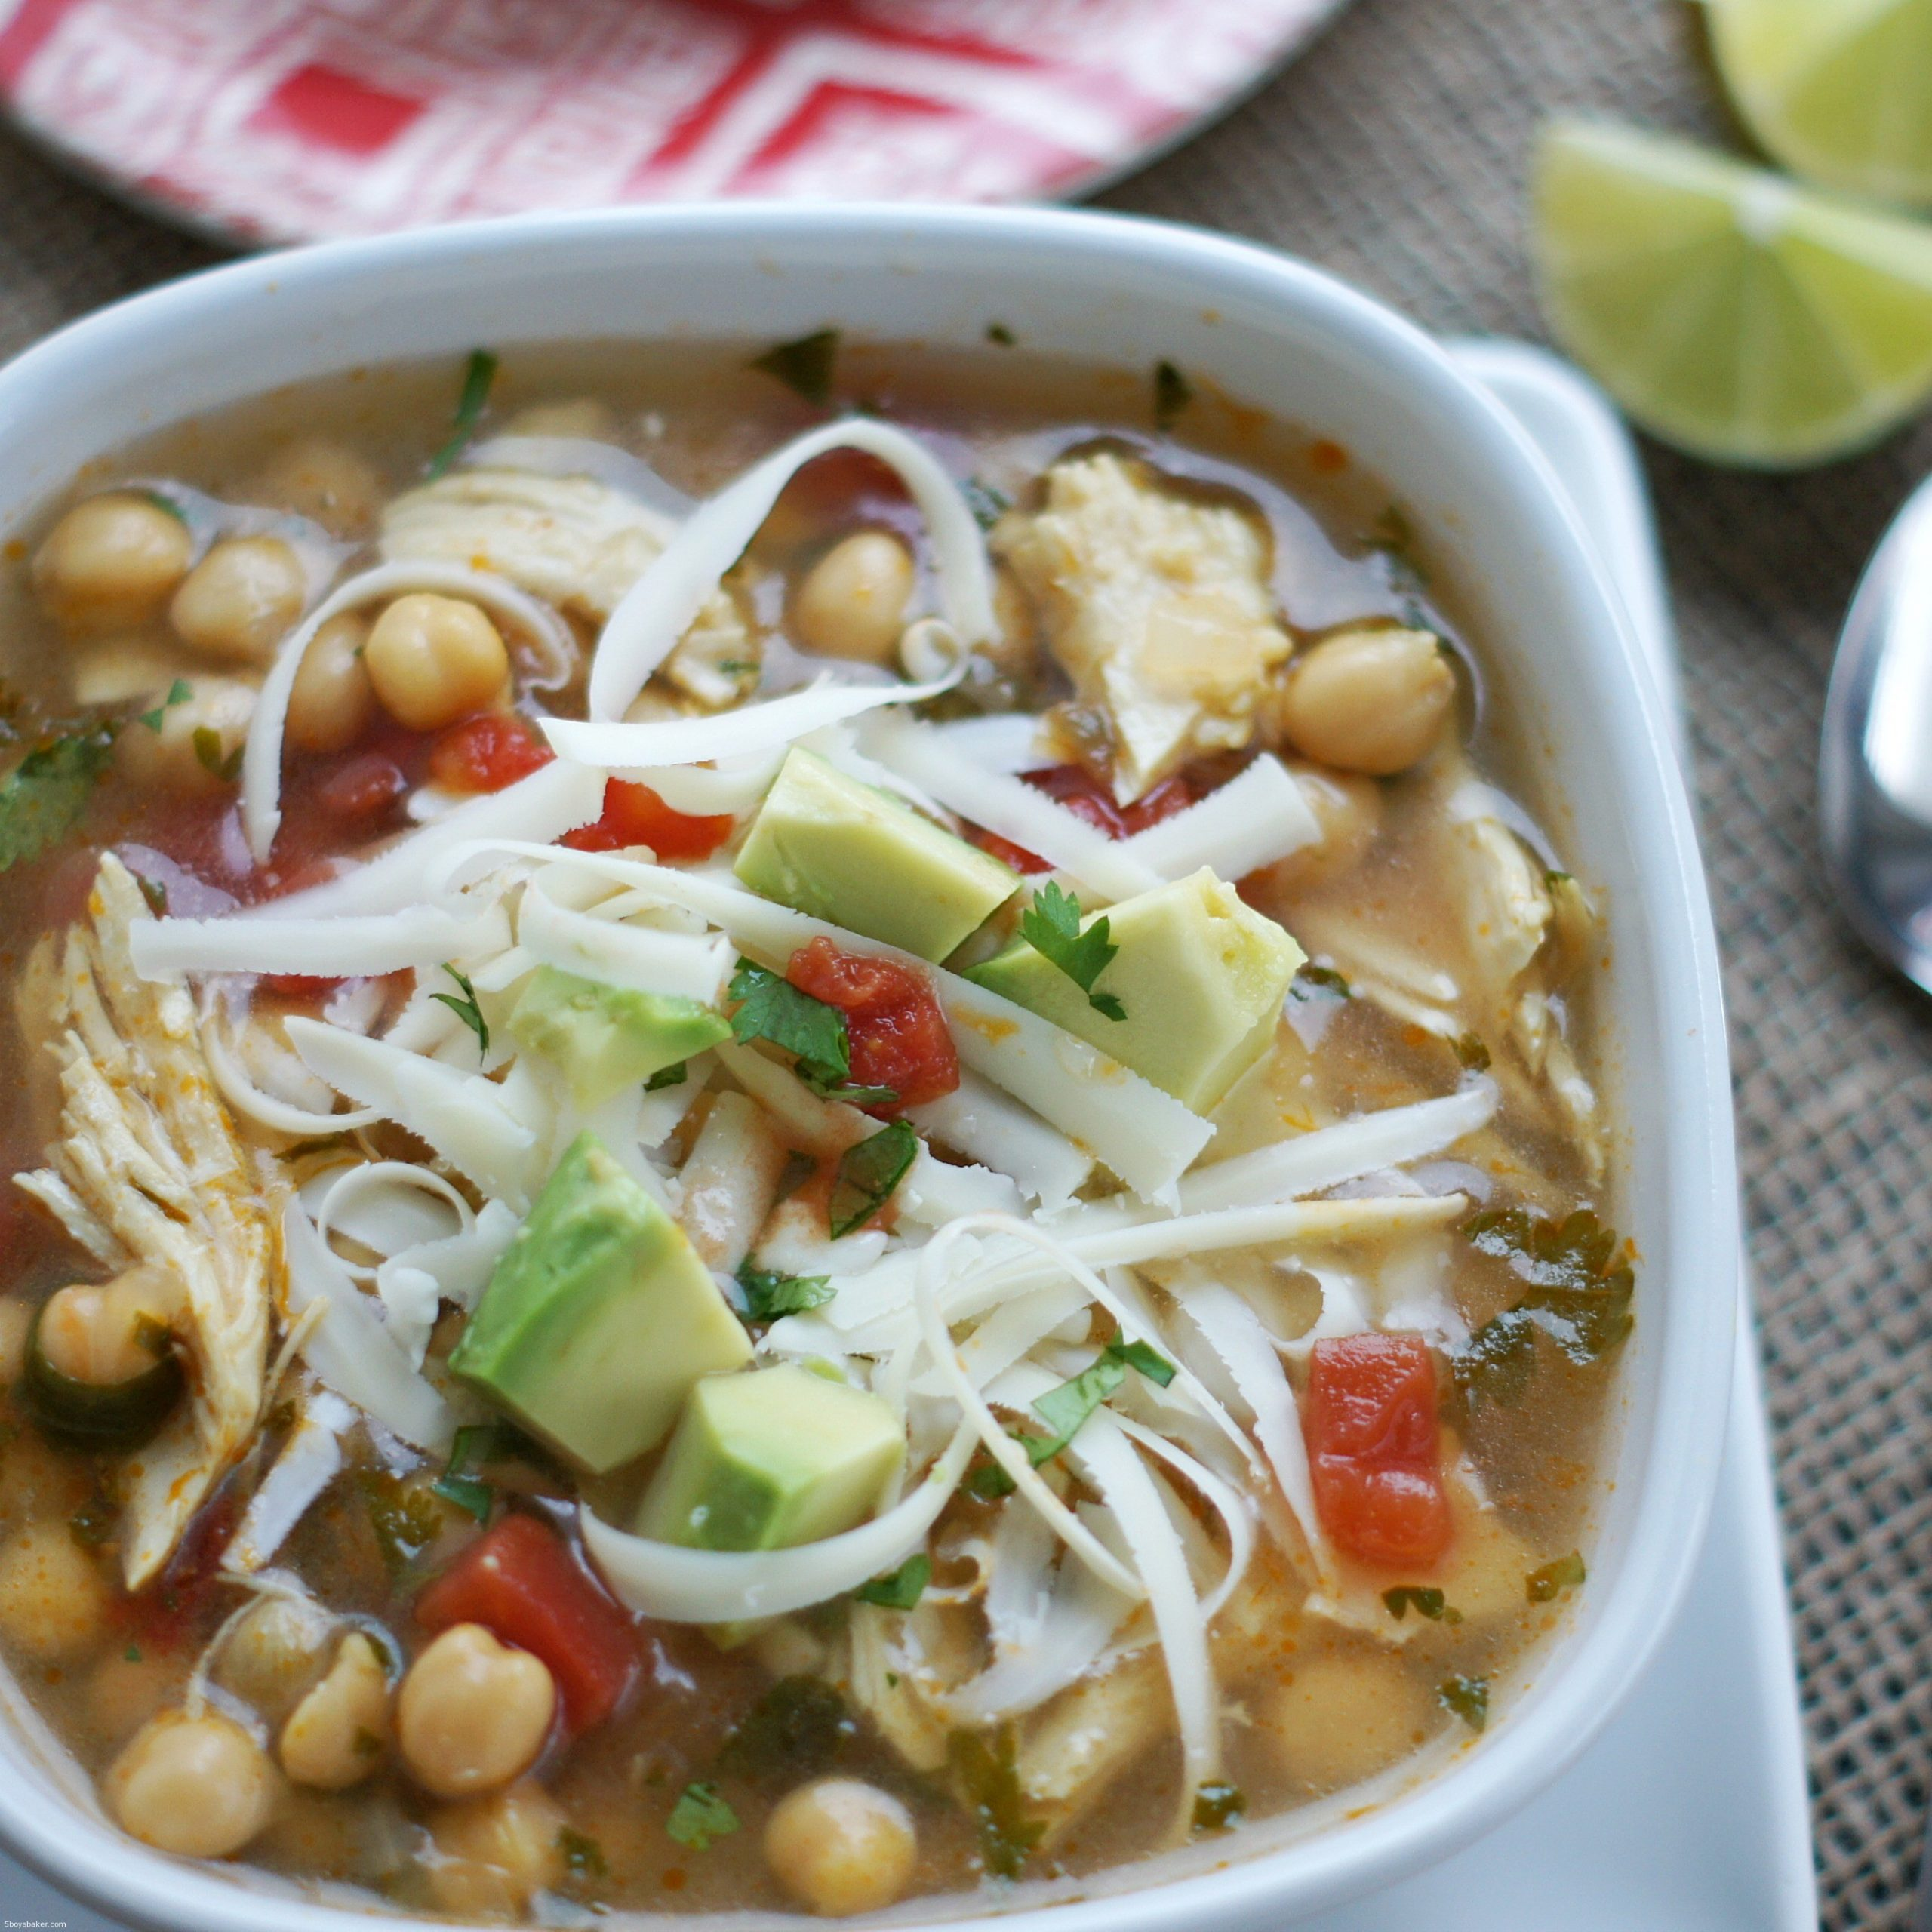 bowl of slow cooker chipotle chicken and chickpea soup